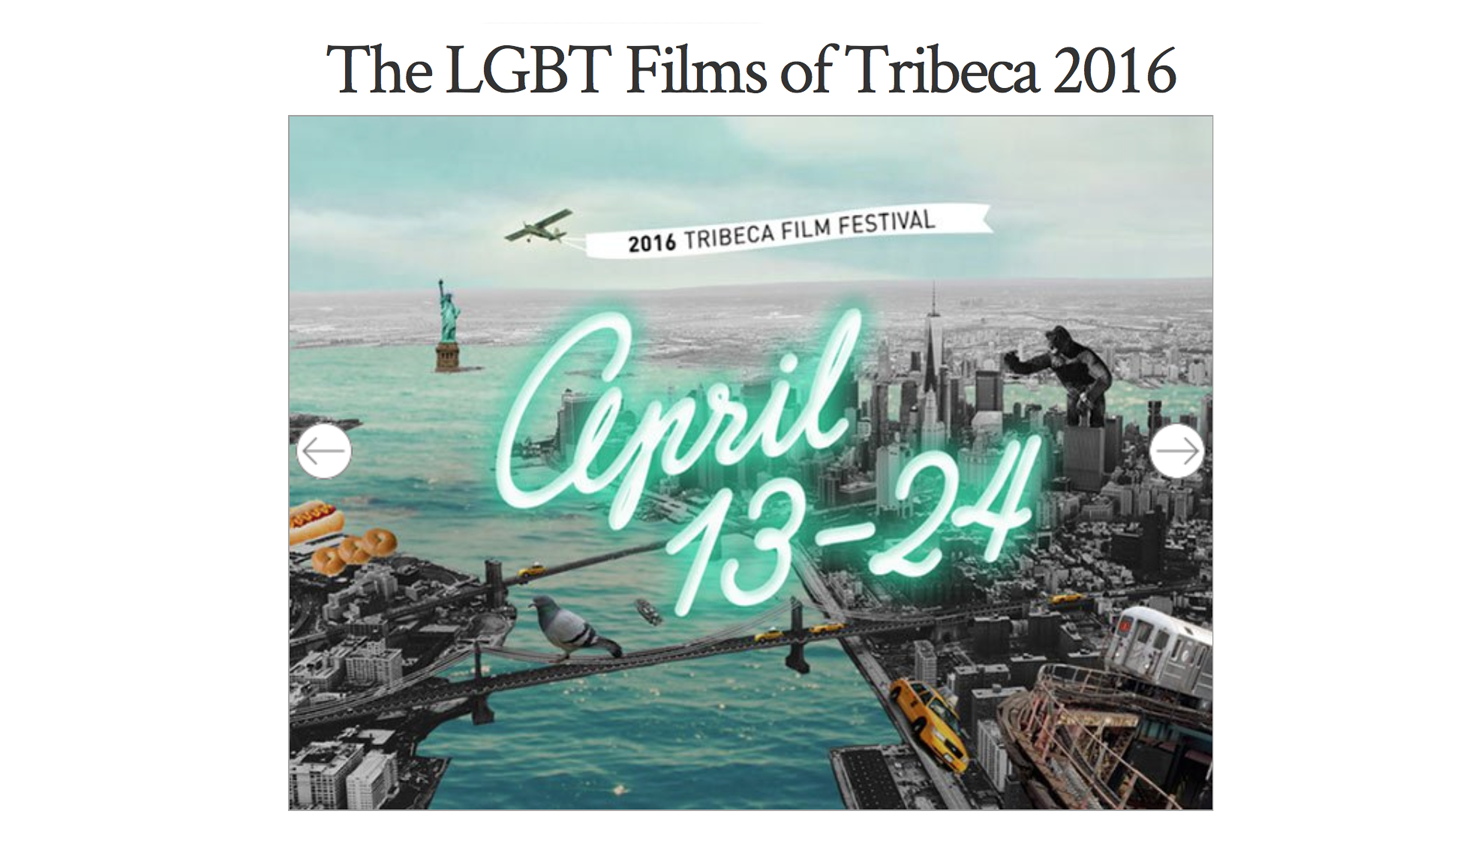 The LGBT Films of Tribeca 2016